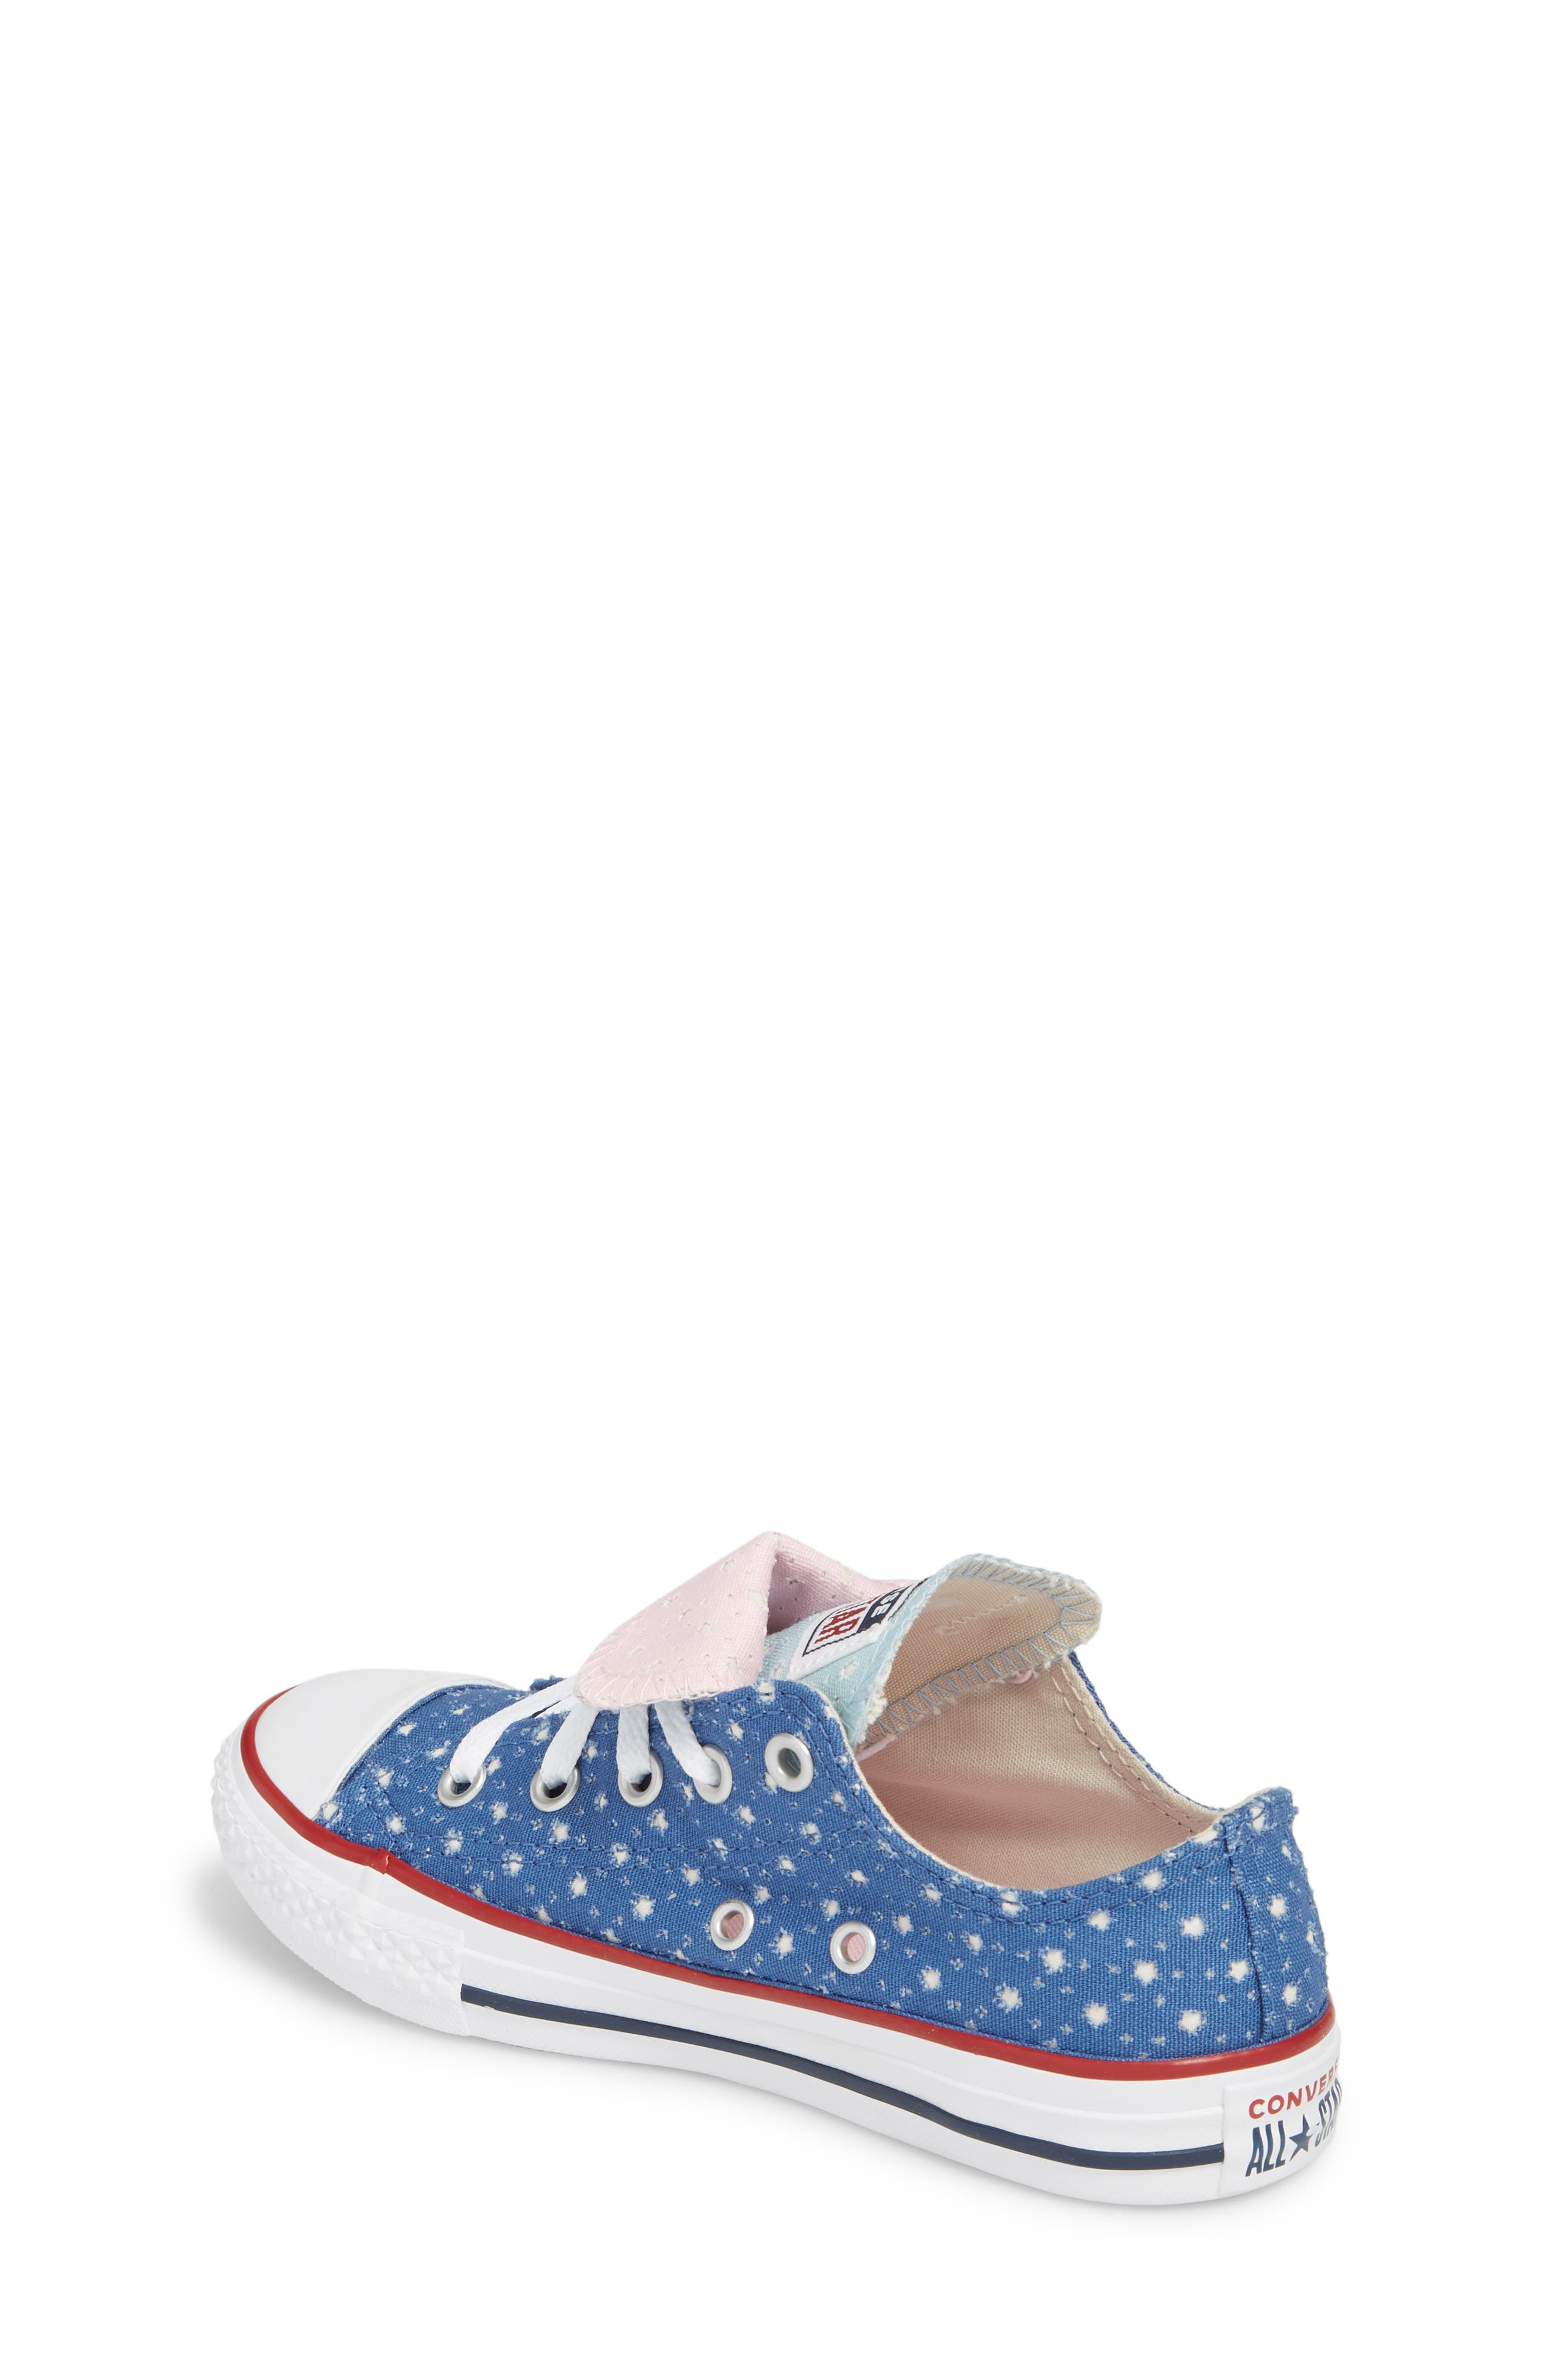 Chuck Taylor<sup>®</sup> All Star<sup>®</sup> Double Tongue Sneaker,                             Alternate thumbnail 2, color,                             Nightfall Blue